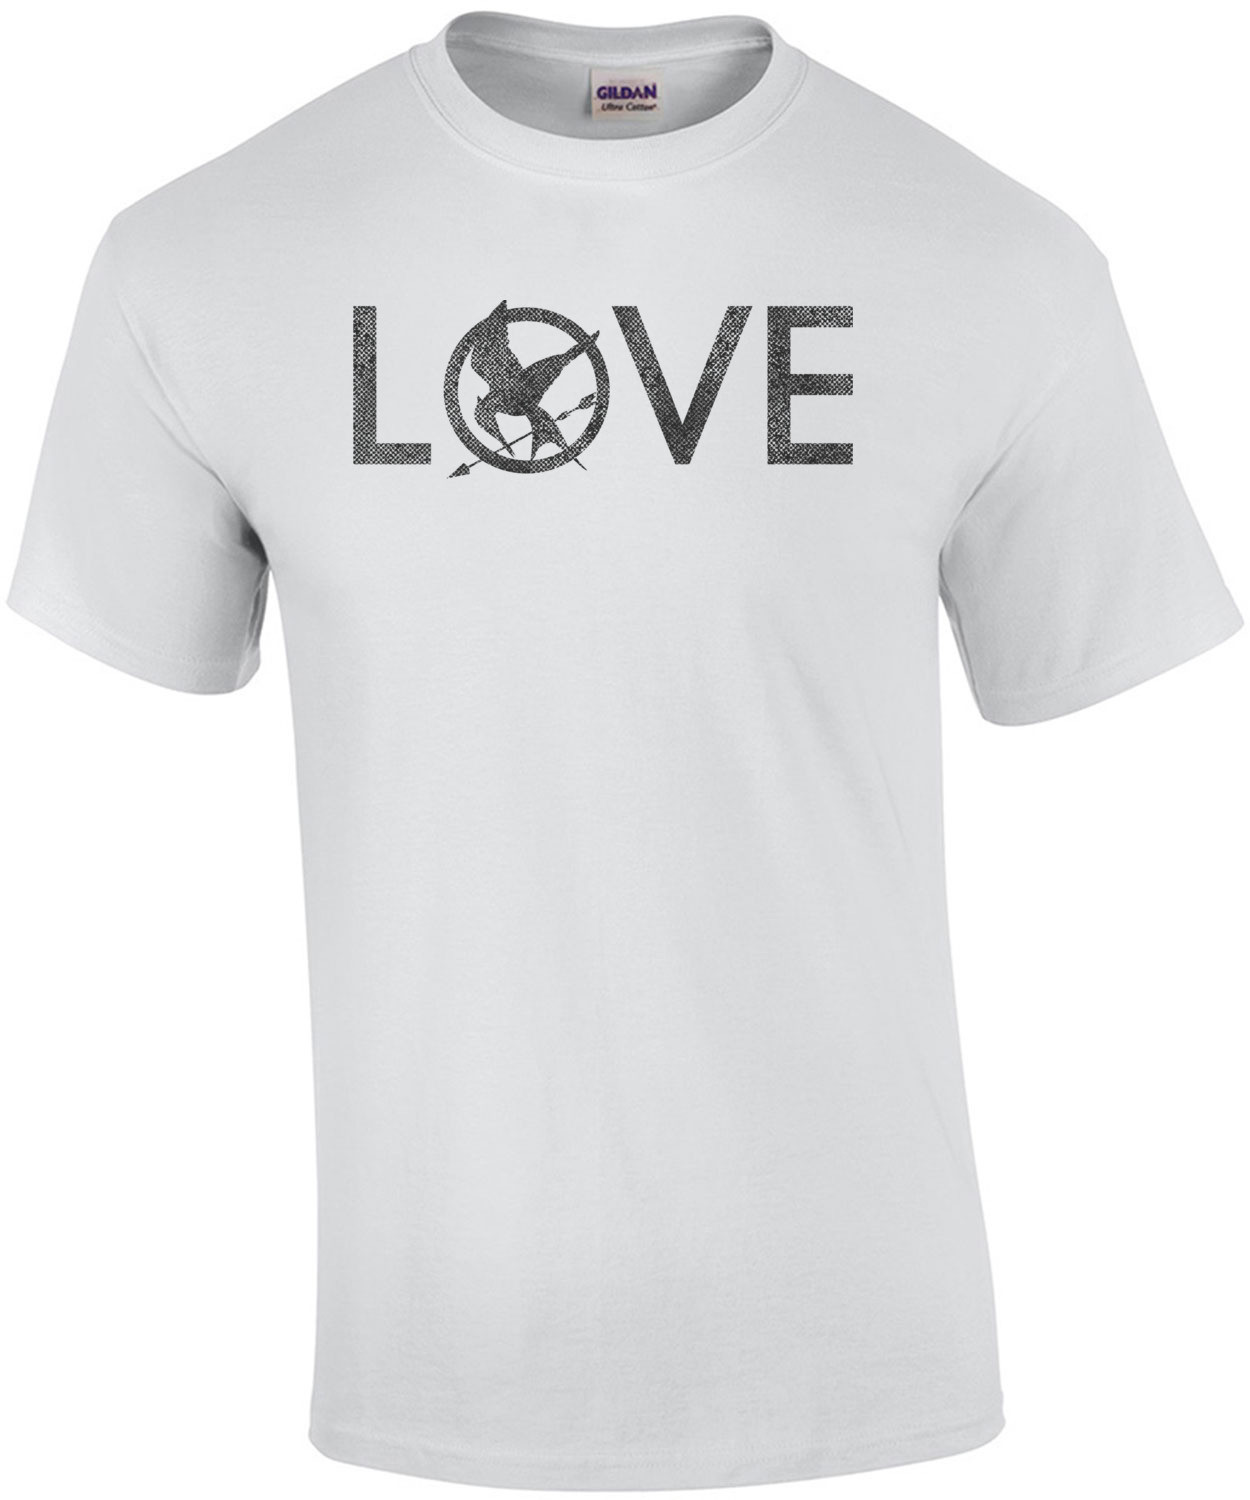 Love - The Hunger Games Shirt